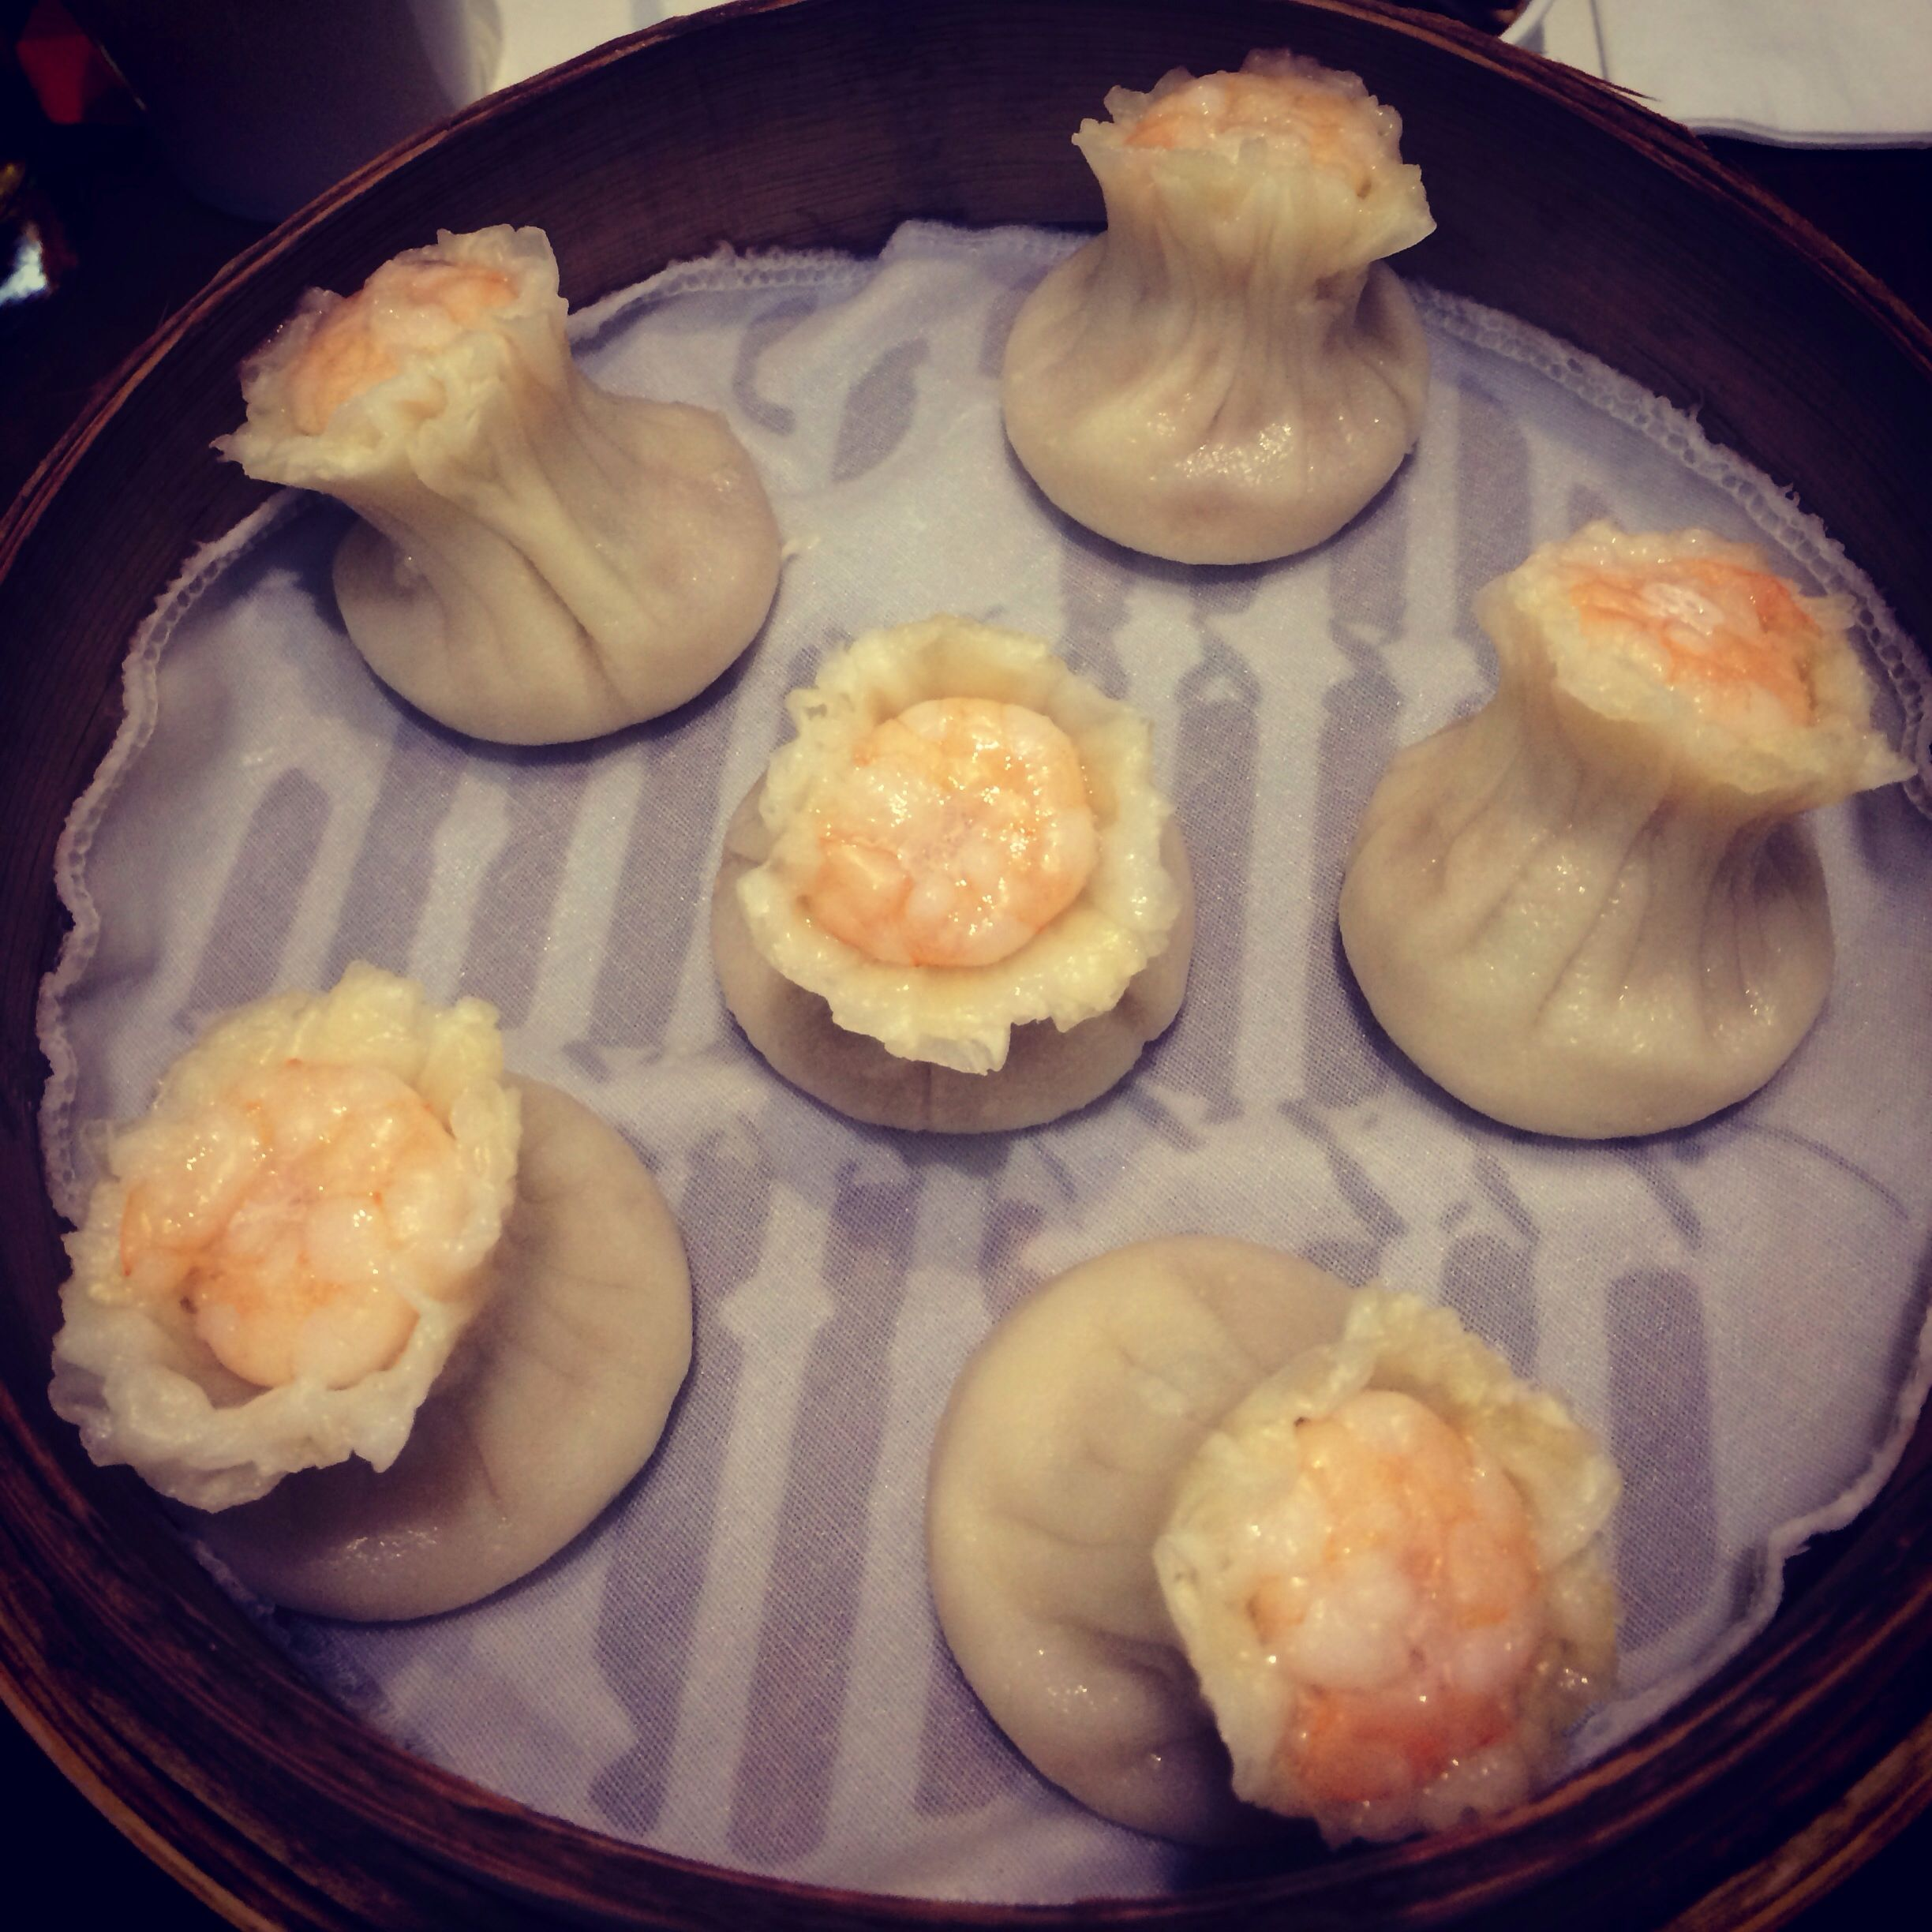 Shrimpdumplings @dintaifung hongkong